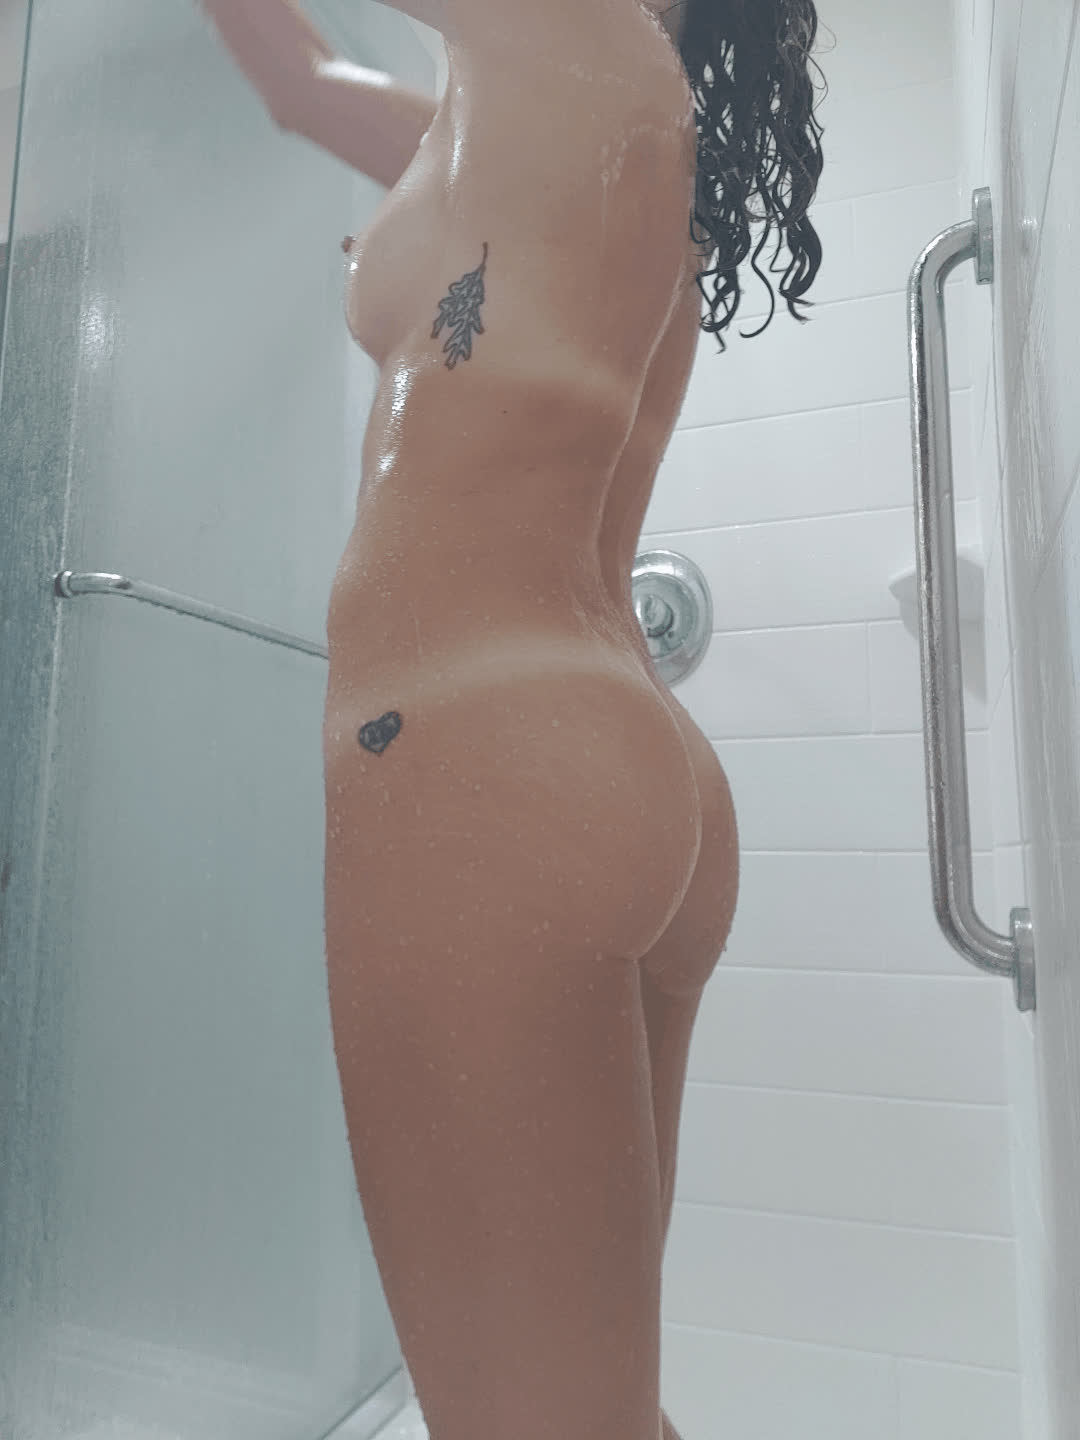 What would you do to this little butt?